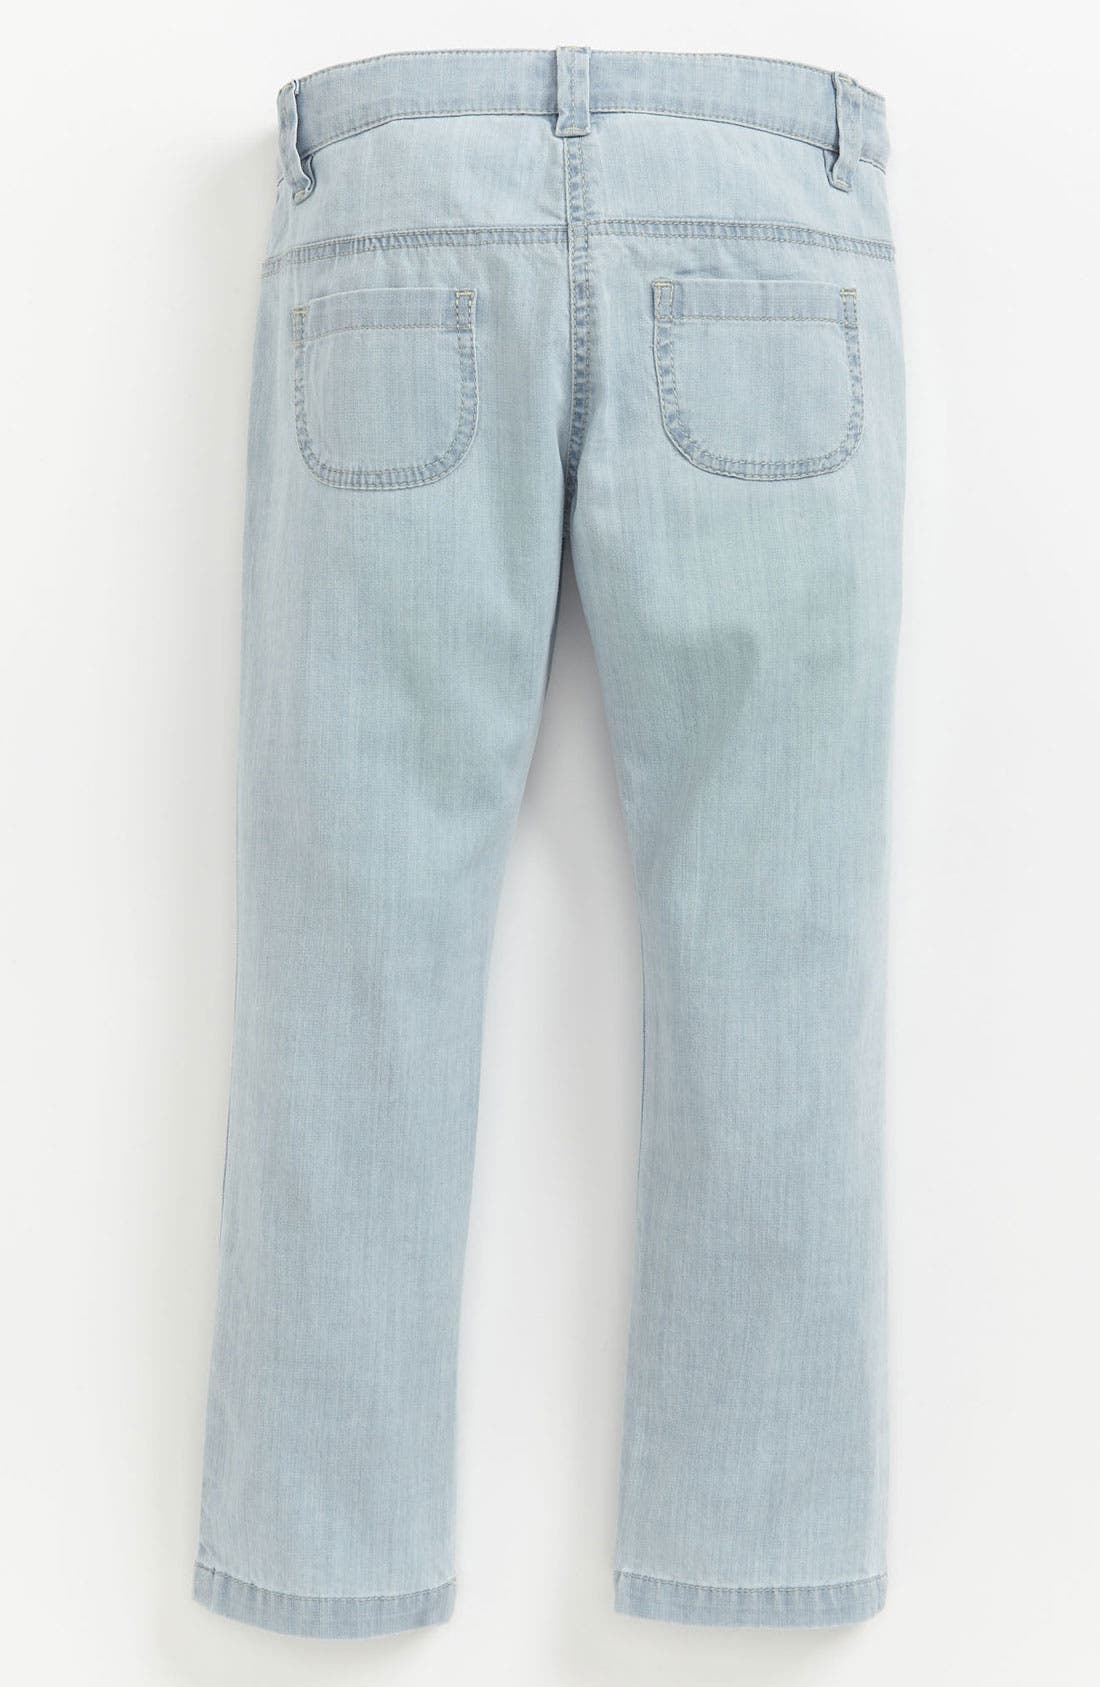 Alternate Image 1 Selected - Chloé Bleached Denim Pants (Toddler, Little Girls & Big Girls)